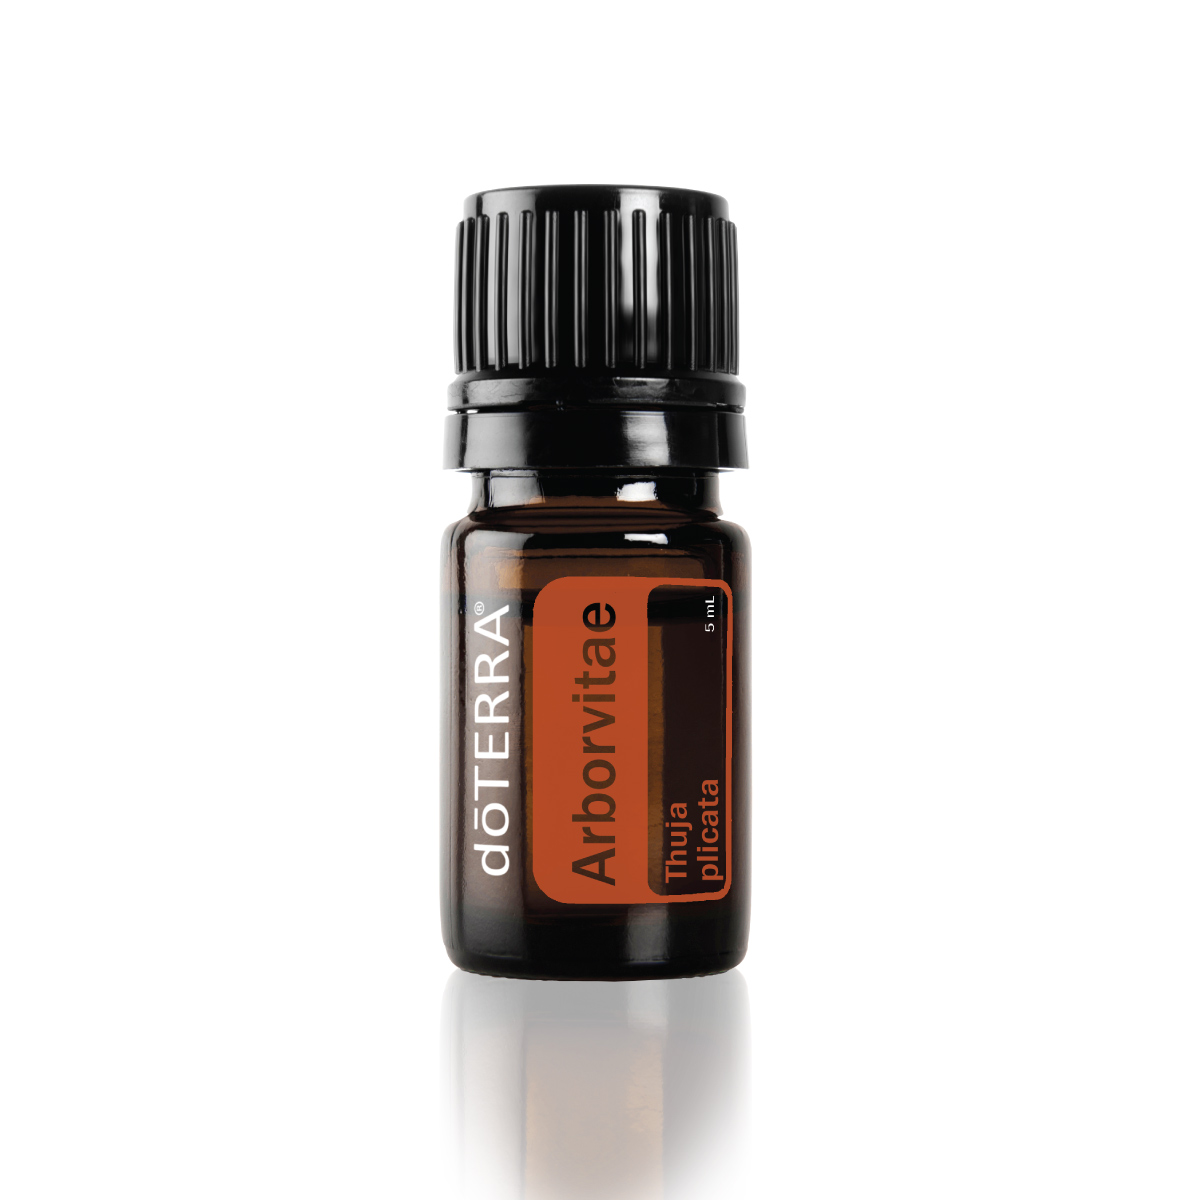 What are the benefits of Arborvitae essential oil? Arborvitae oil has benefits for the skin, body, and household cleaning